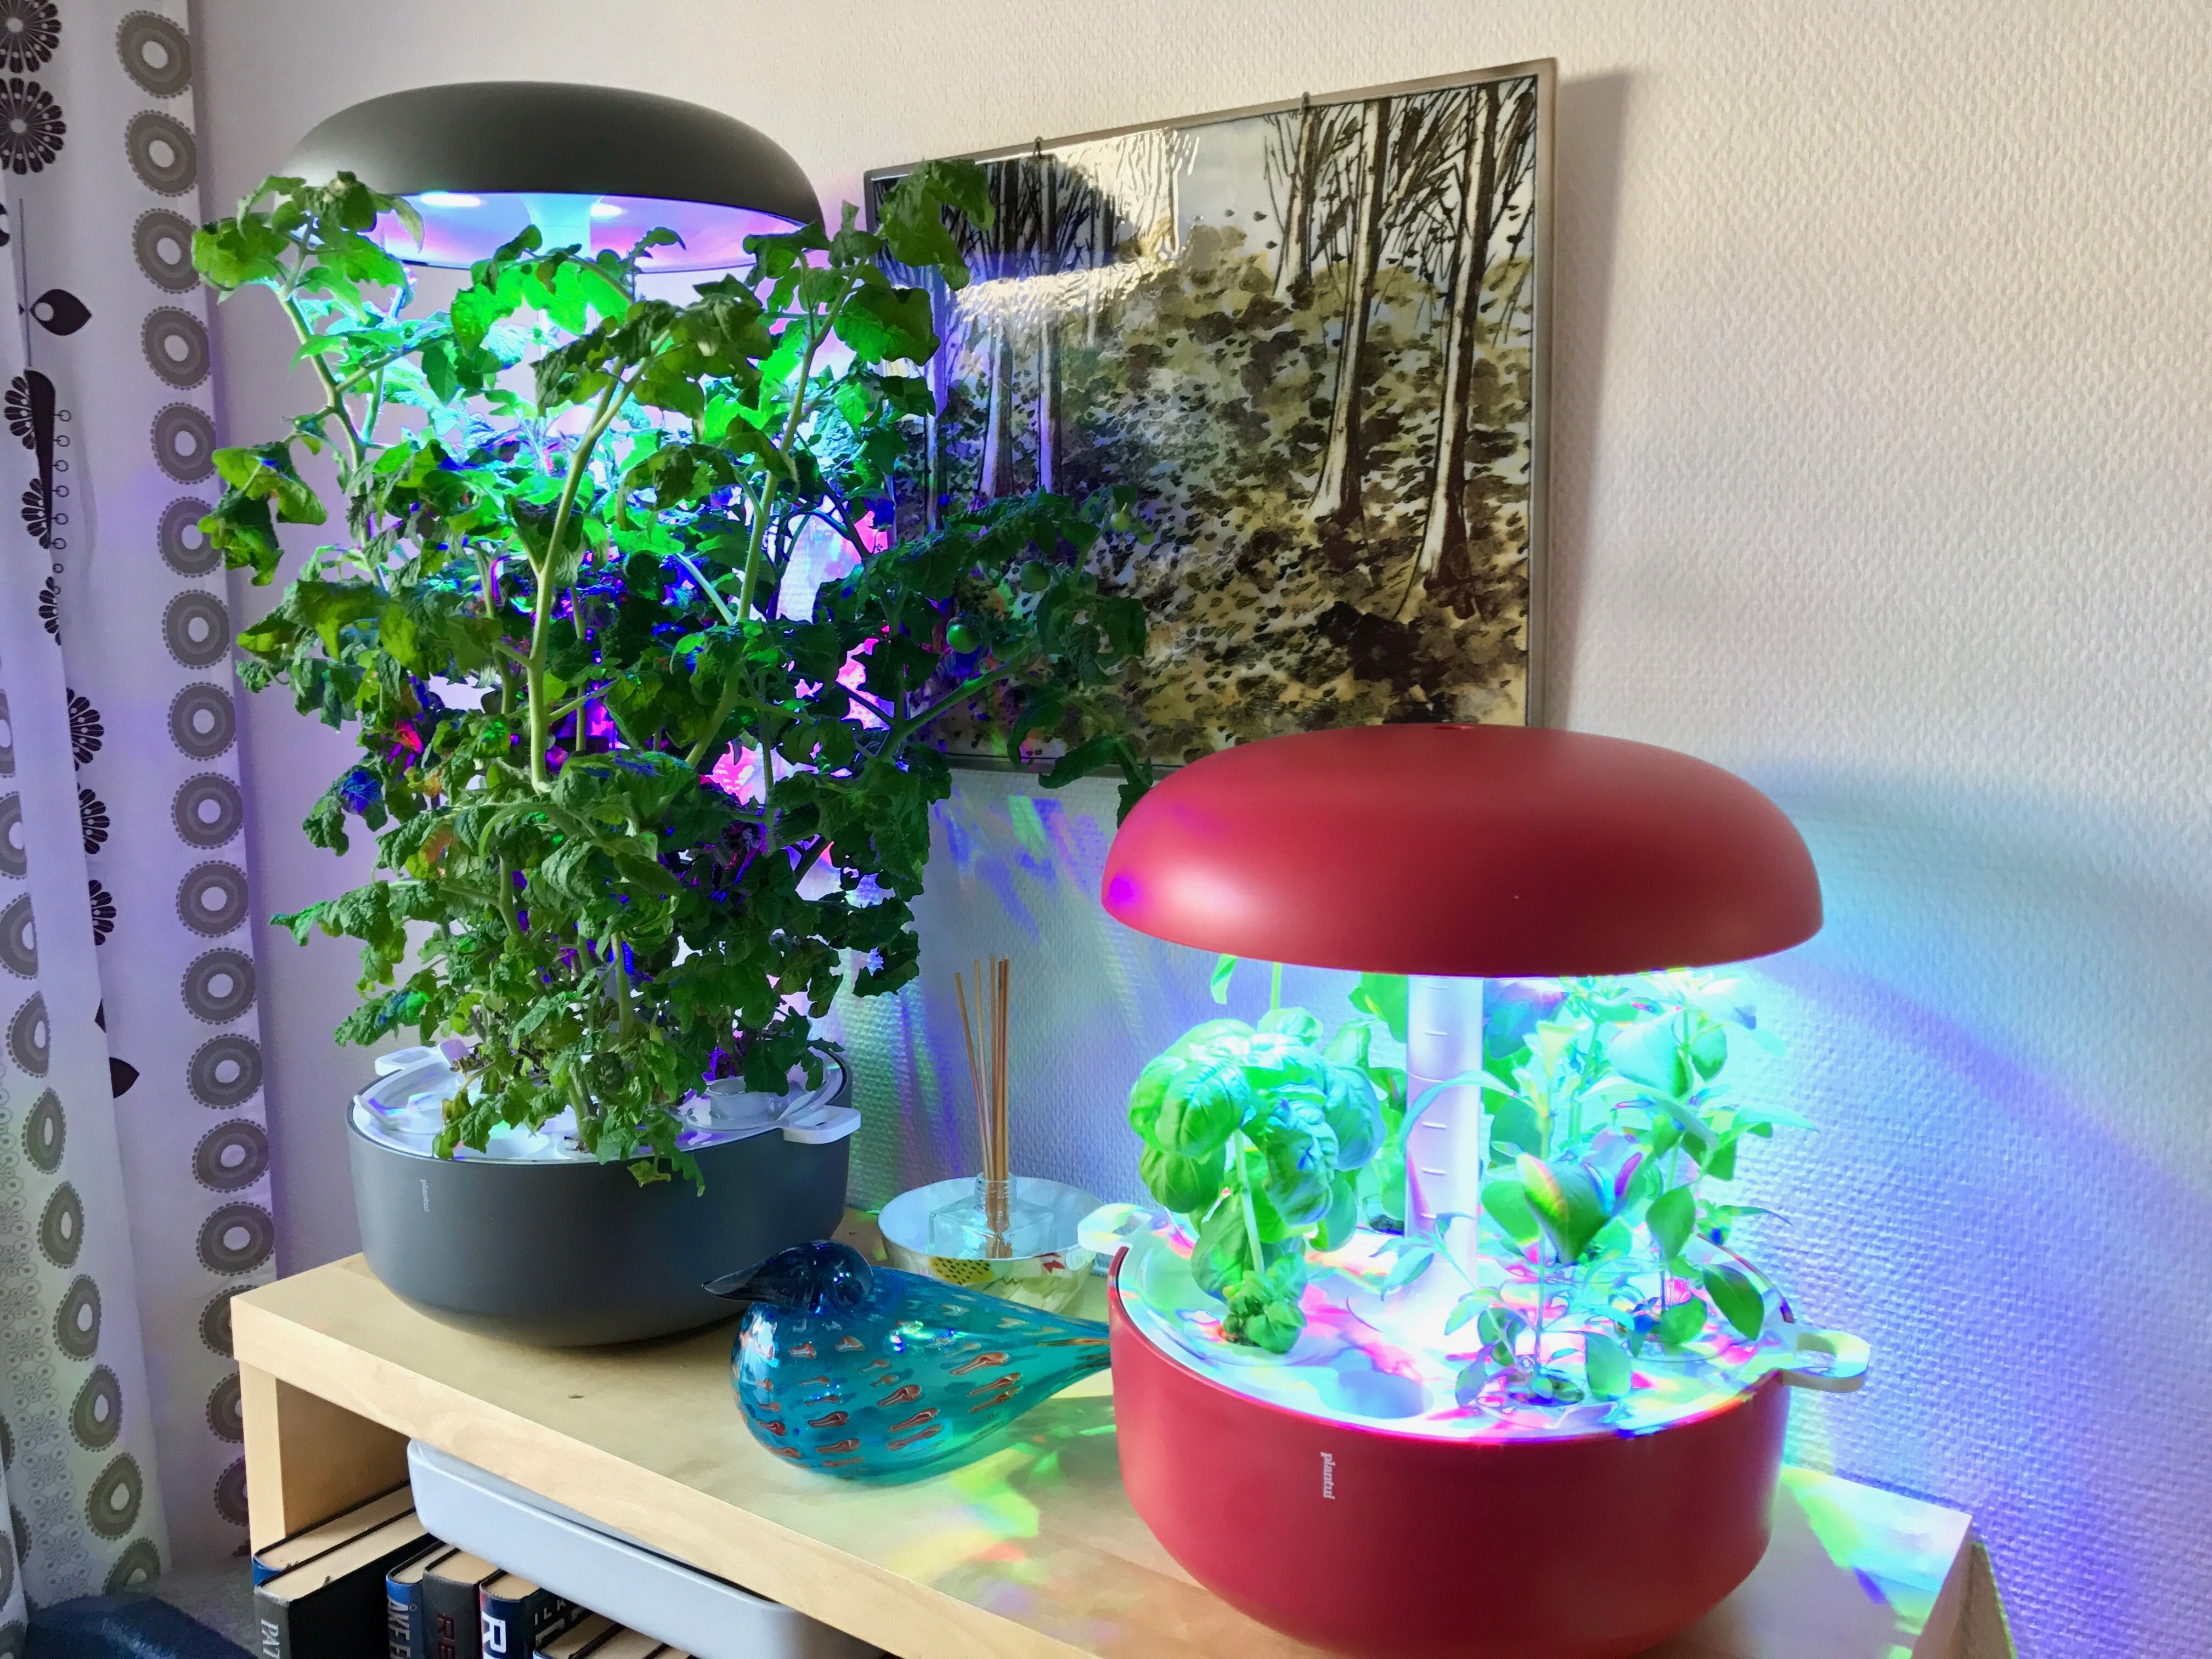 Plantui Smart Garden with light height blocks growing Singaporean tomatoes and Lemon Basil at home